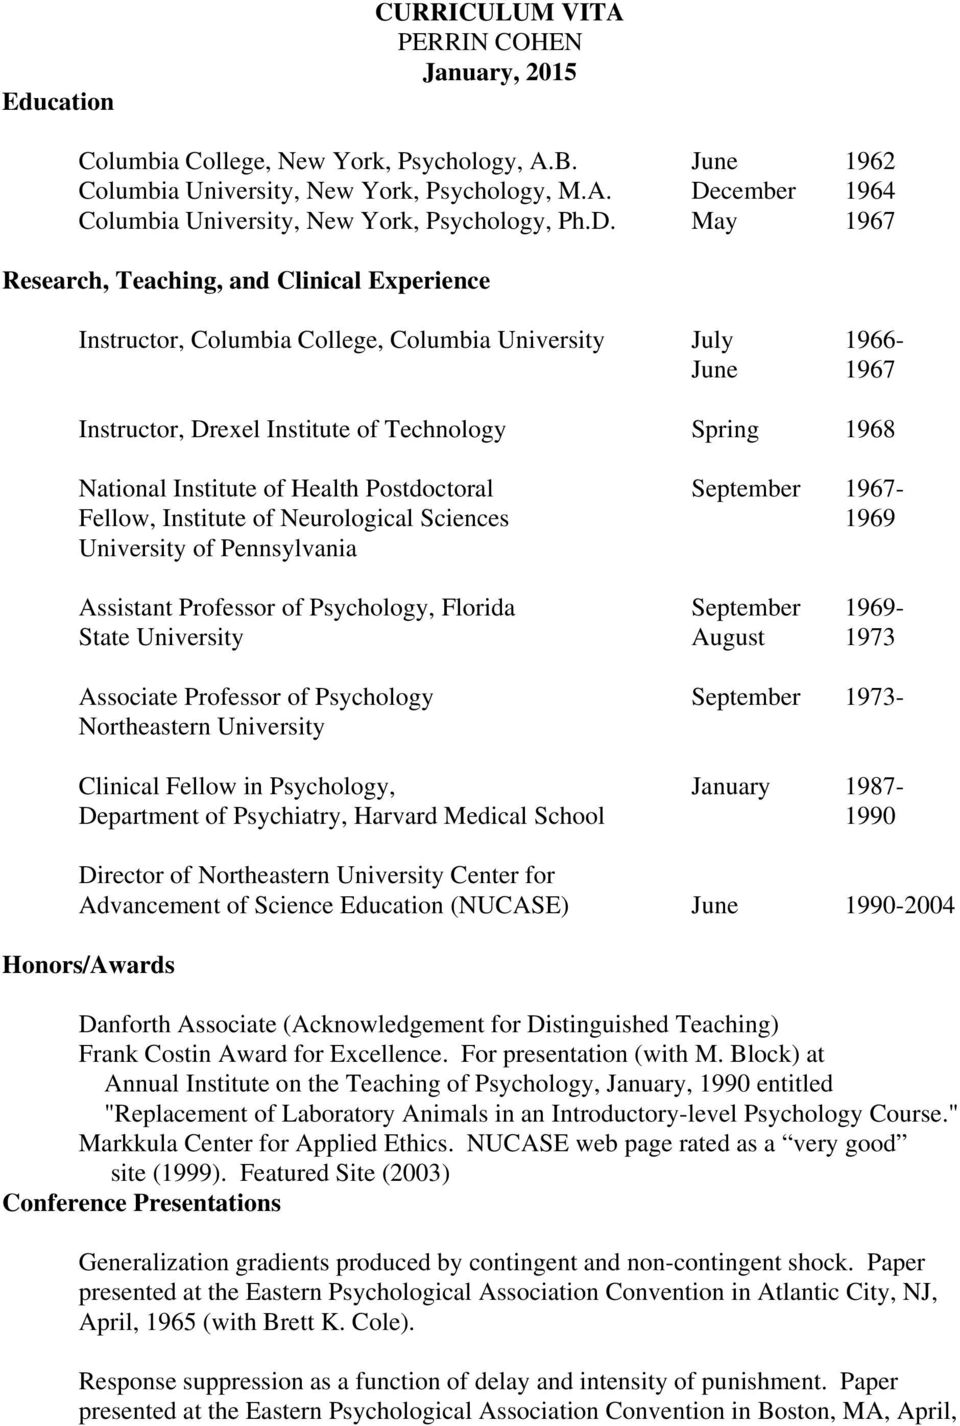 Institute of Health Postdoctoral September 1967- Fellow, Institute of Neurological Sciences 1969 University of Pennsylvania Assistant Professor of Psychology, Florida September 1969- State University